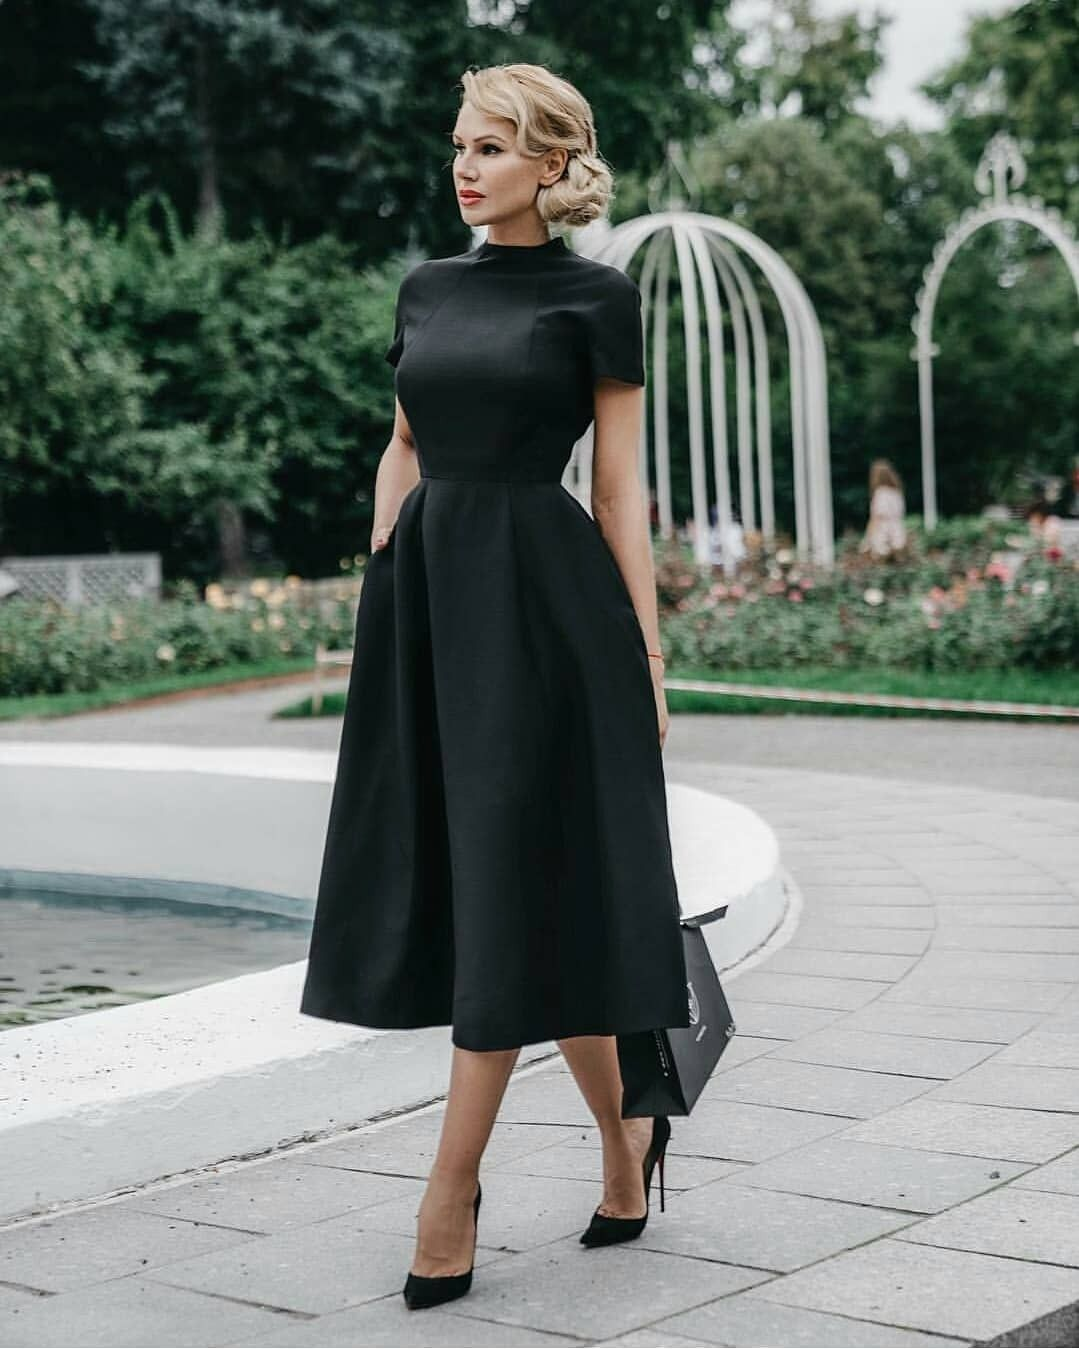 8dfa0b39e85a Elegant black dress. You can do so much with this! Layer it